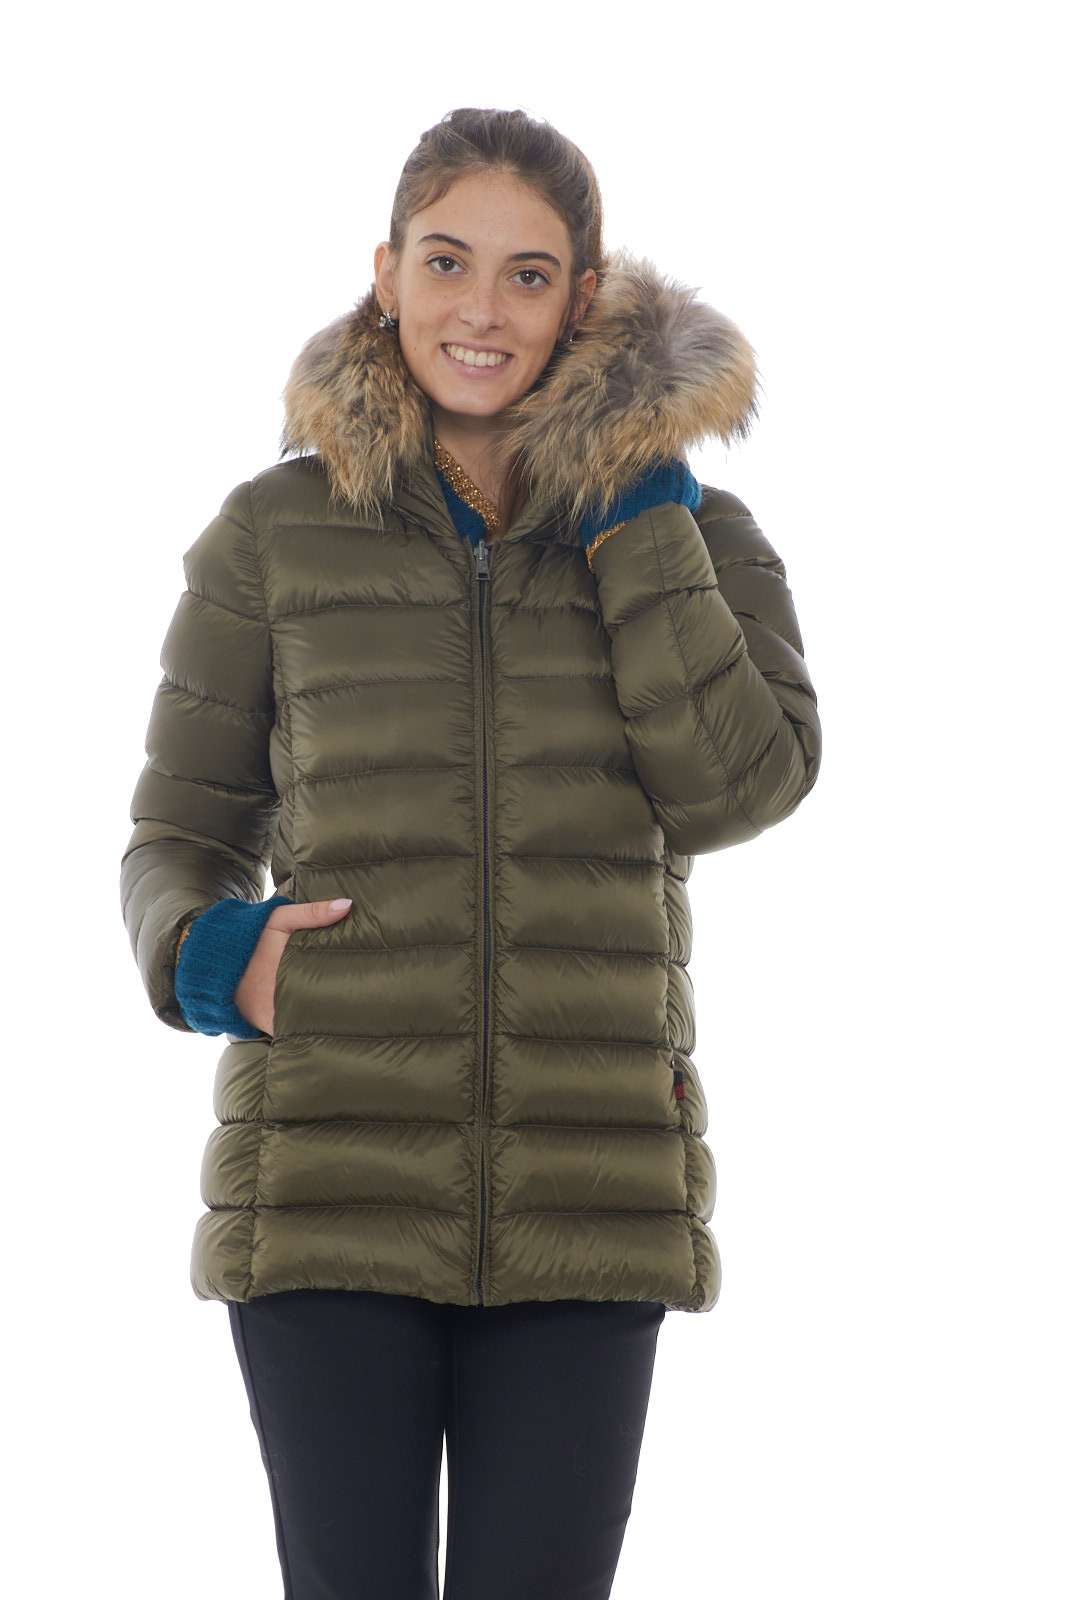 https://www.parmax.com/media/catalog/product/a/i/AI-outlet_parmax-parka-donna-Woolrich-WWCPS2760-E.jpg